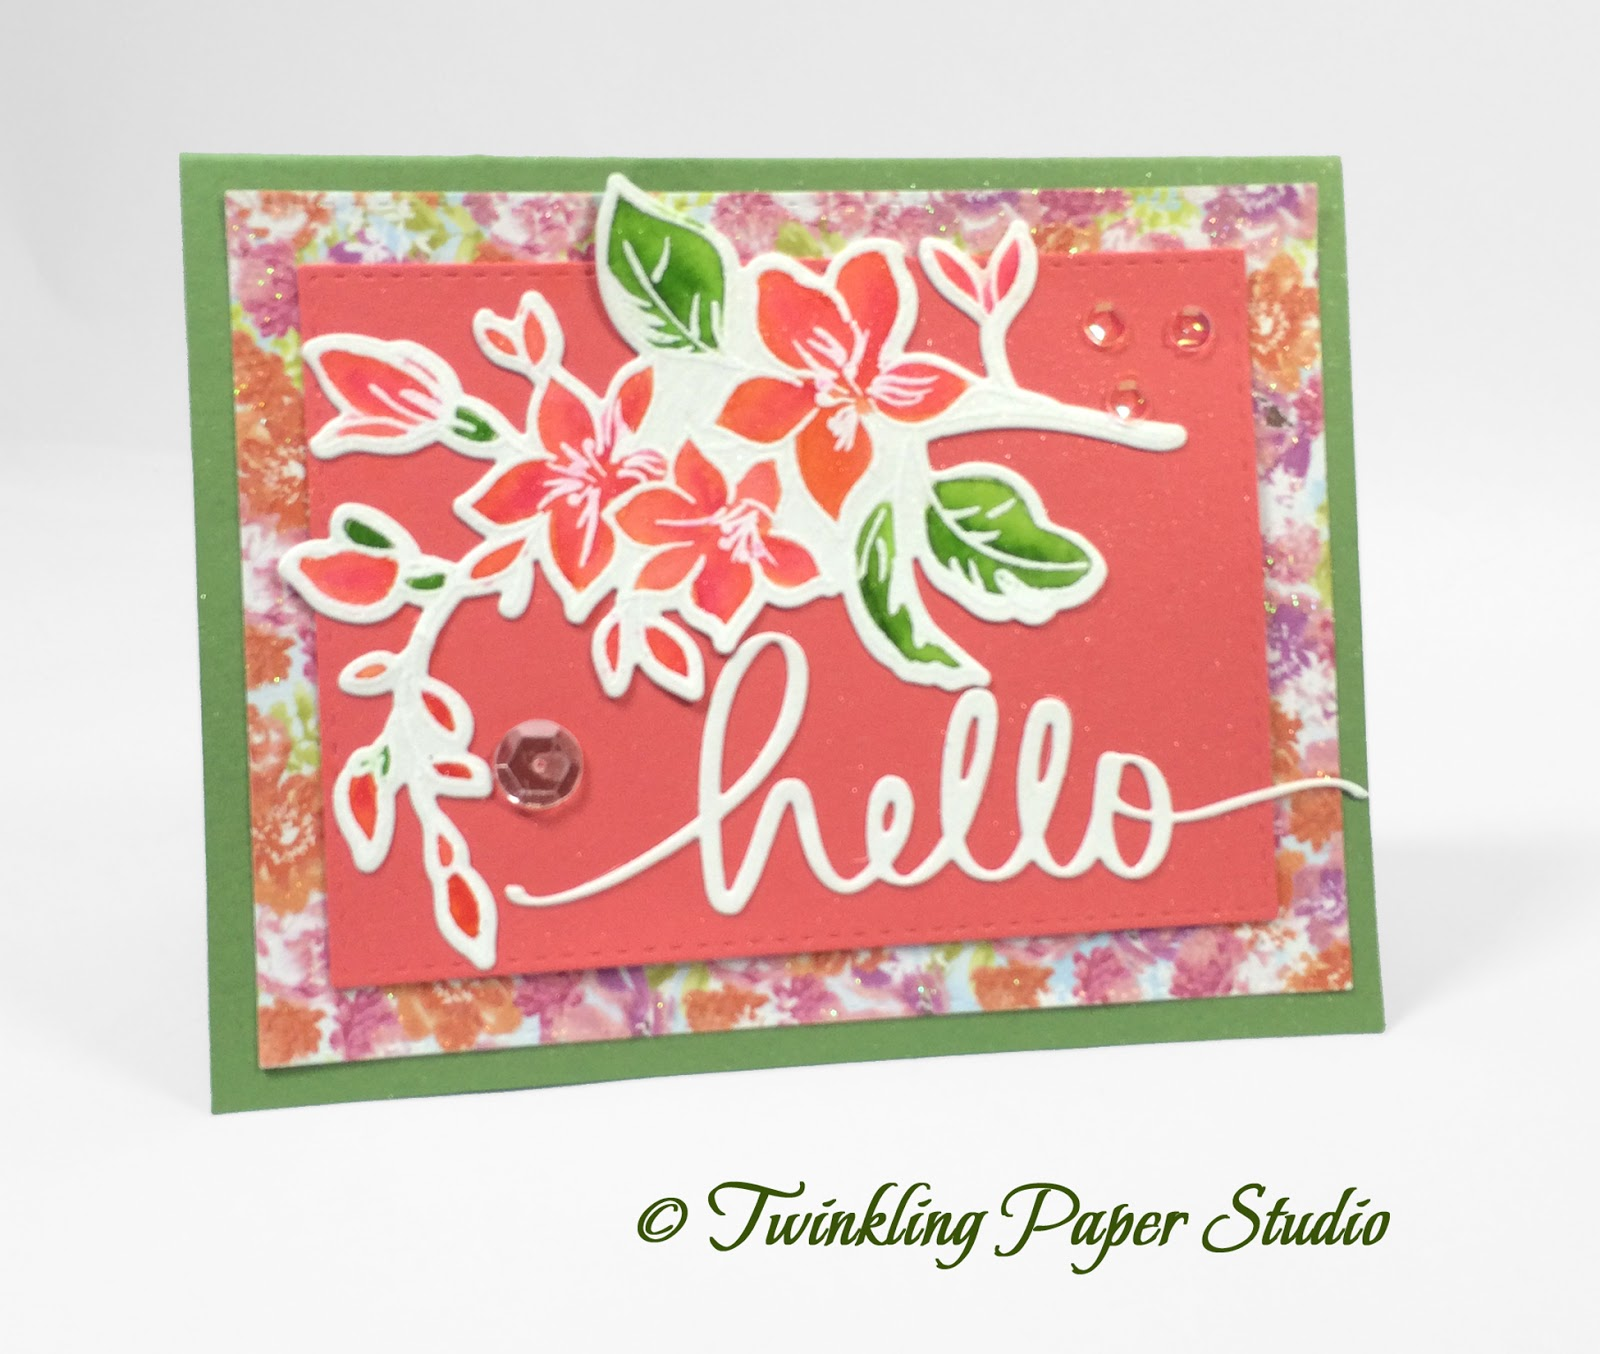 Cream colored cardstock paper studio - There S No Special Techniques Here Just Some Ordinary Coloring Of The Floral Branch With Some Cute Patterned Papers That Were Die Cut With Coordinating